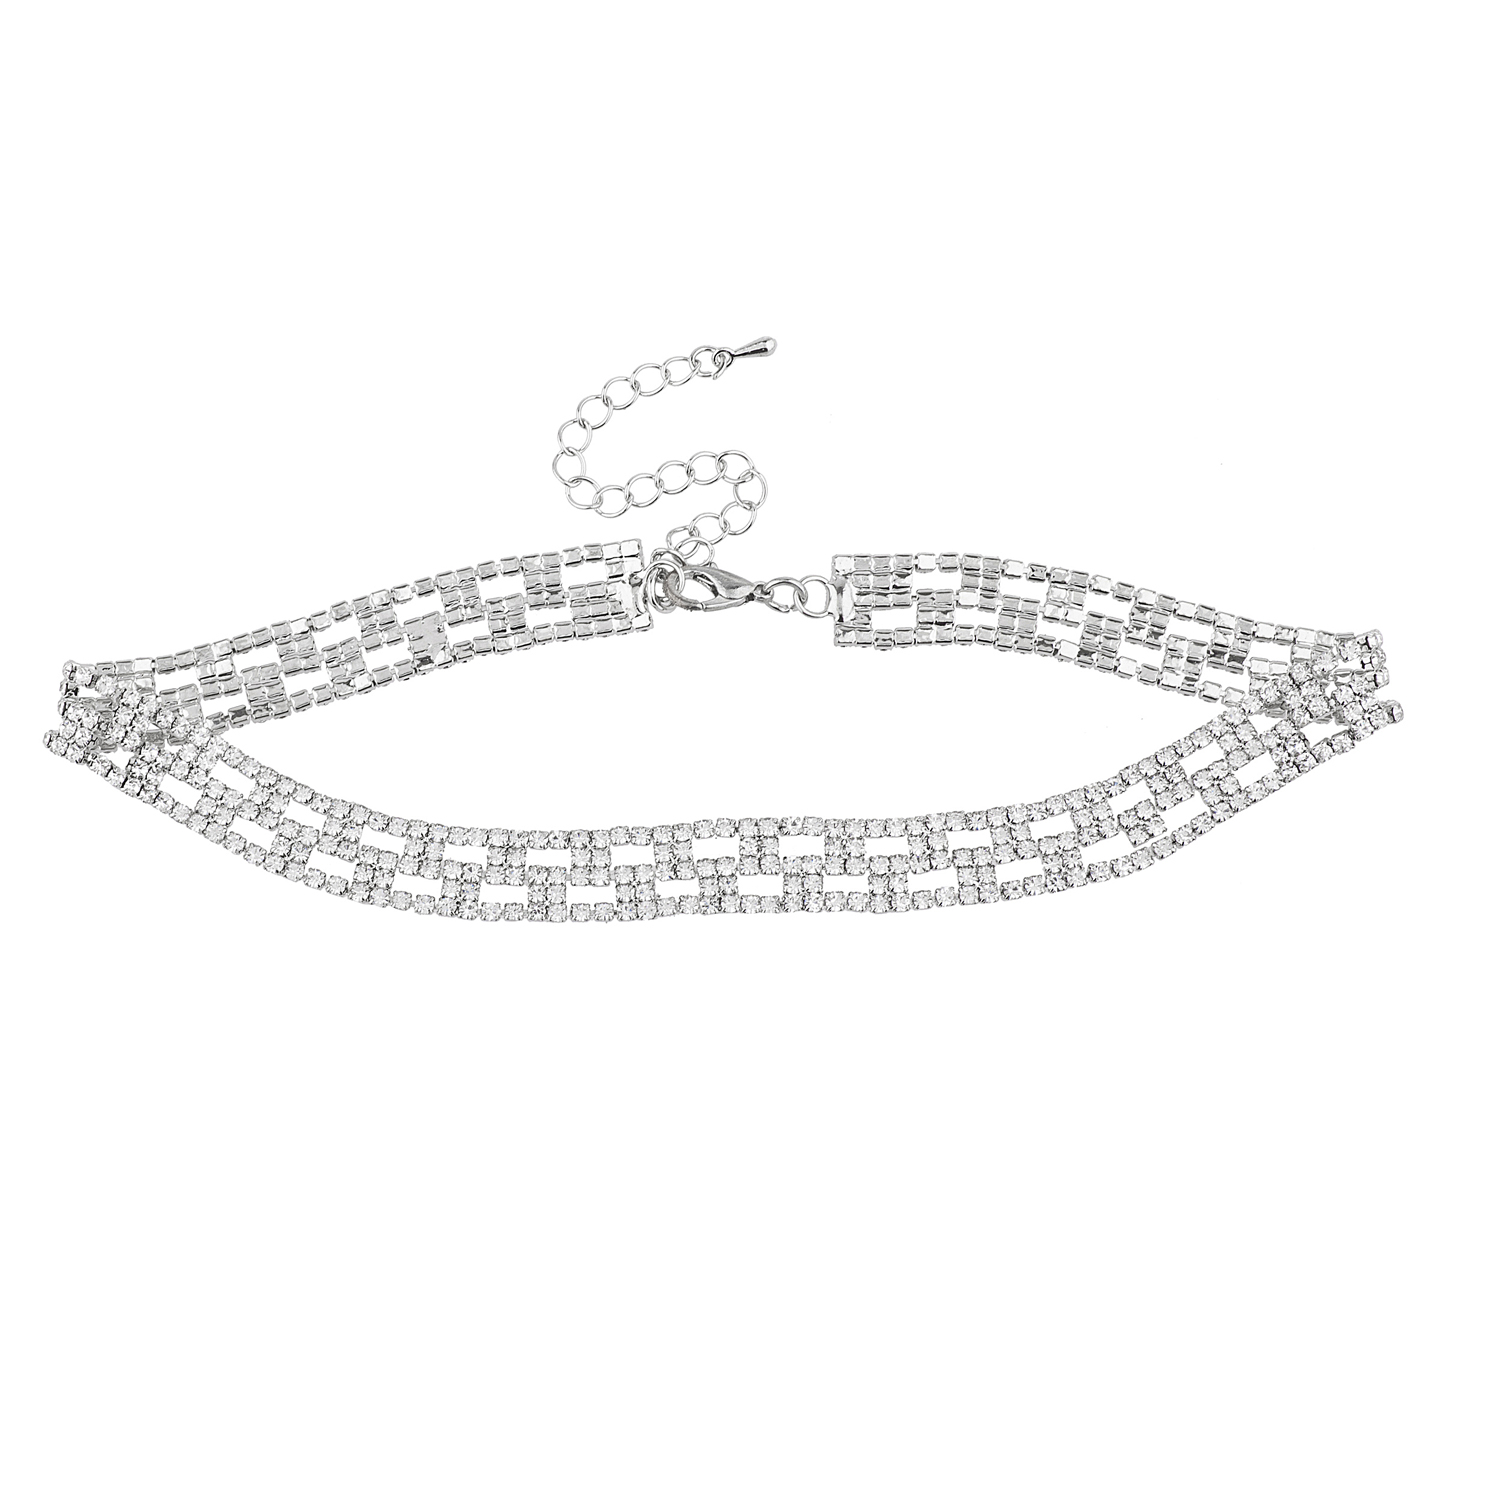 Lux Accessories Silver Tone Faux Crystal Rhinestone Choker Necklace